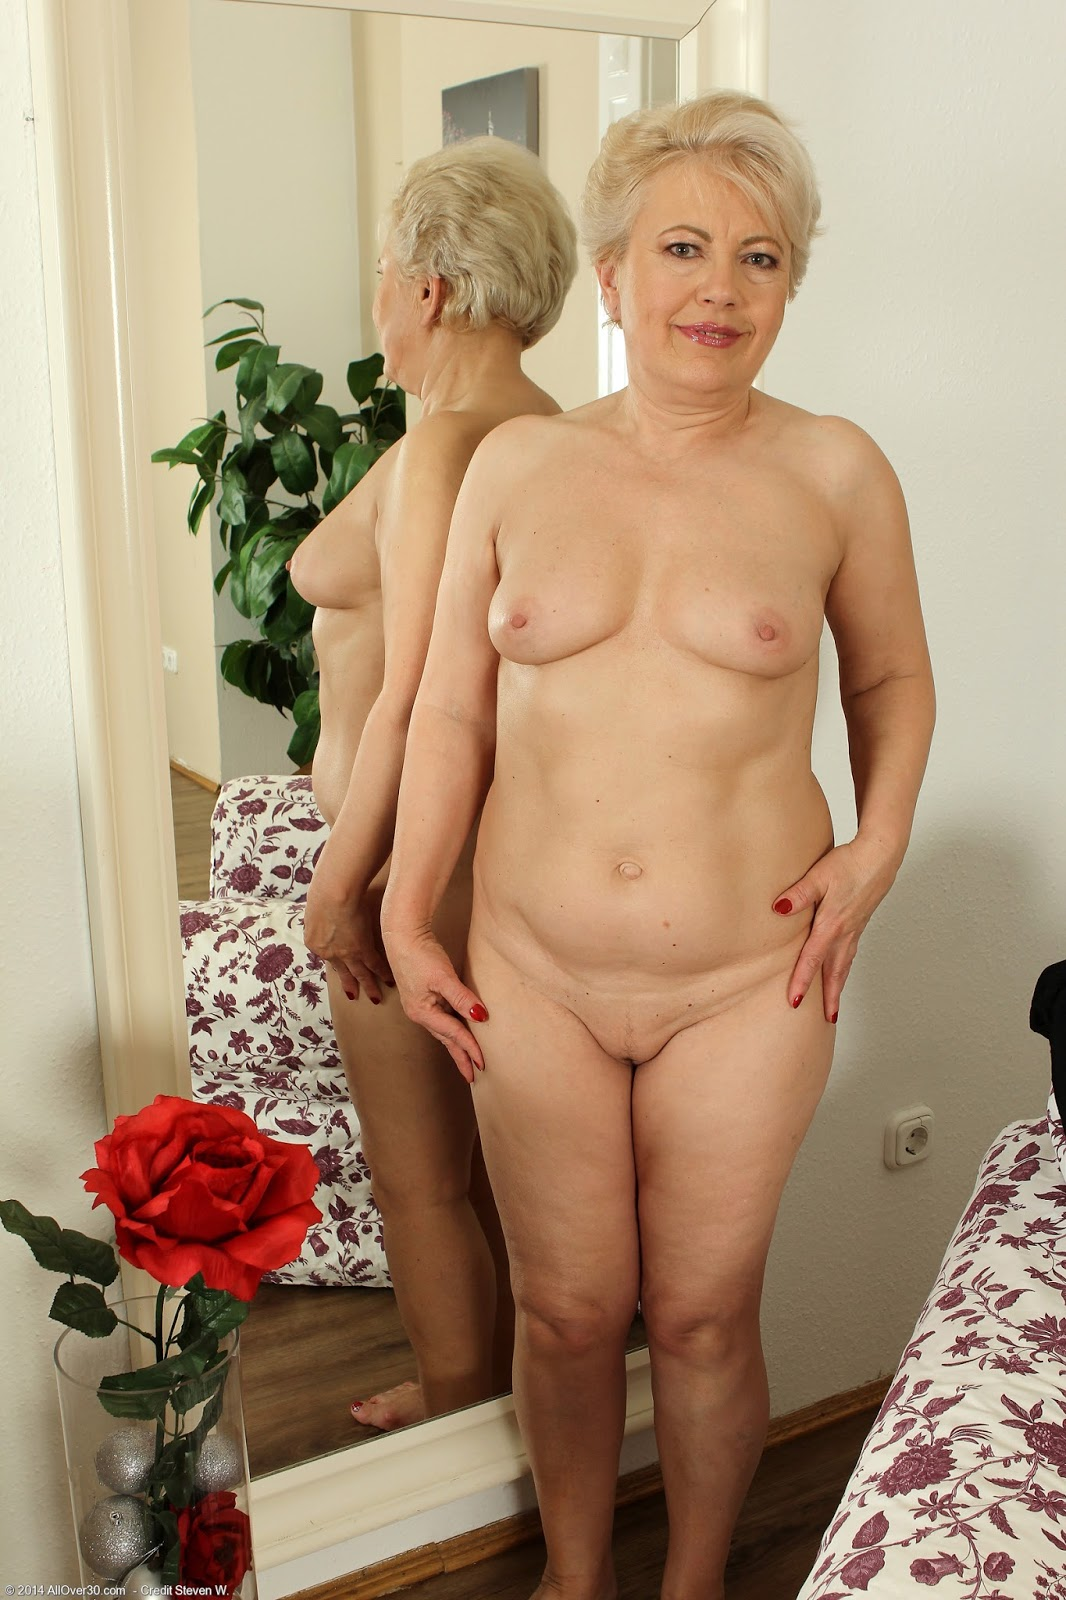 Older women nude free are